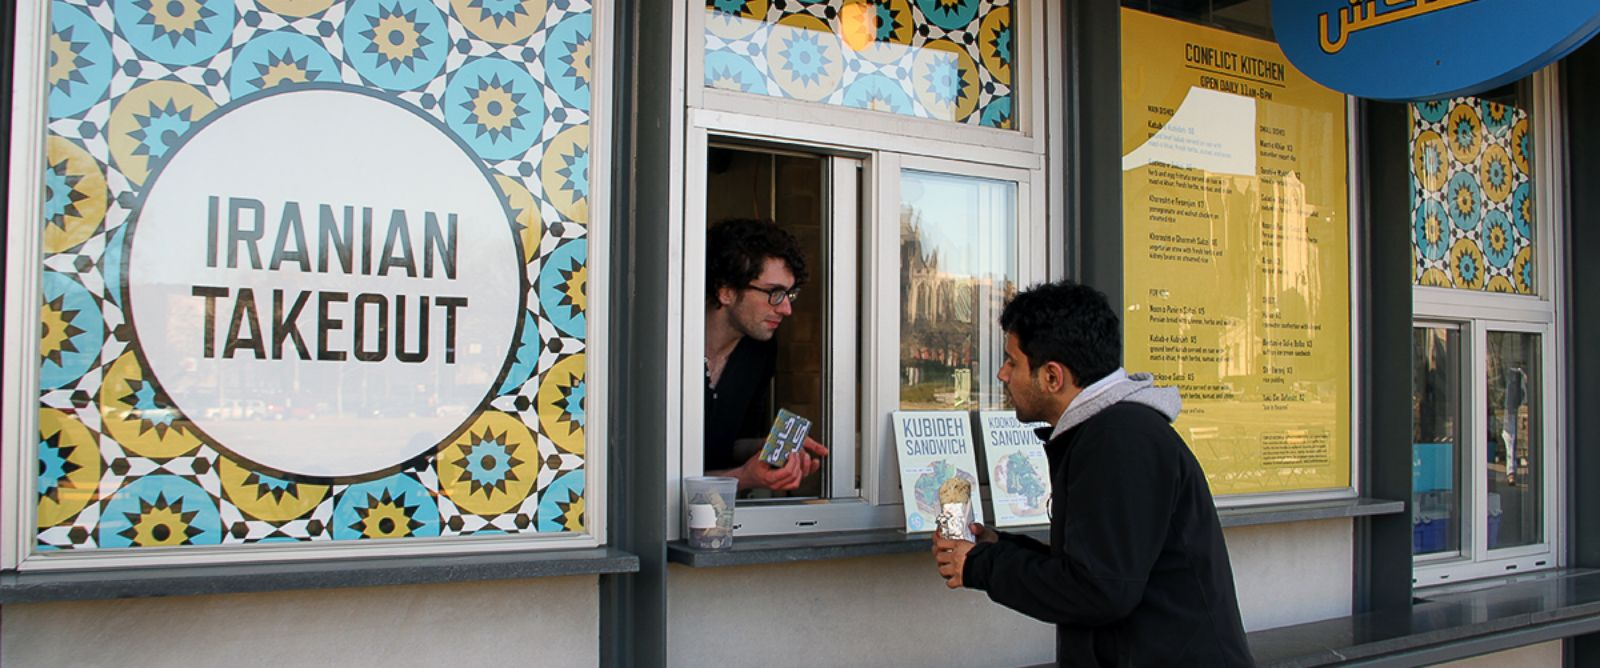 PHOTO: A customer at the takeout window of Conflict Kitchen.